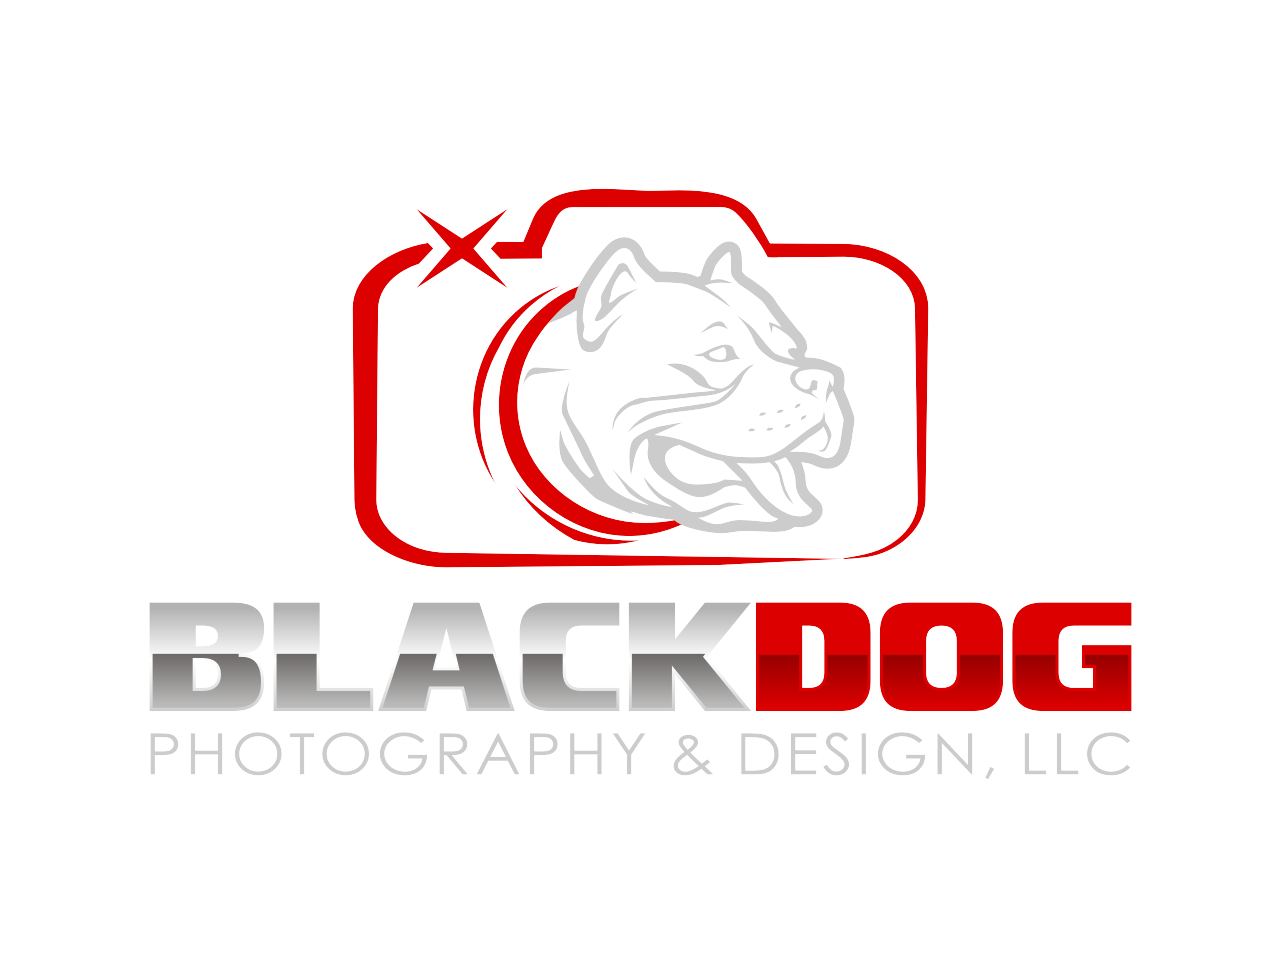 Blackdog Photography and Design